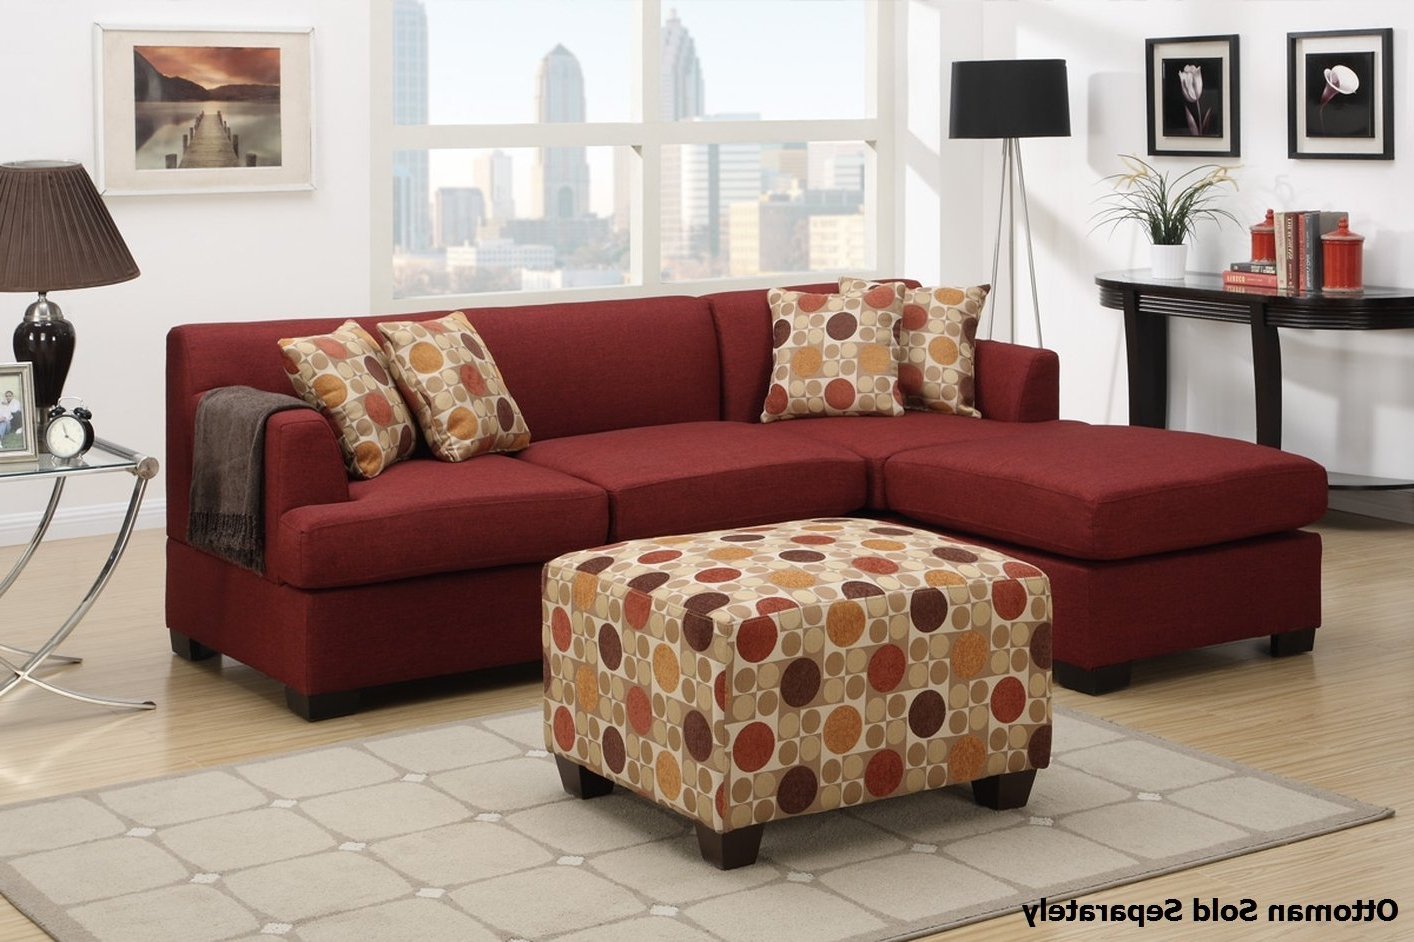 Montreal Ii Red Fabric Sectional Sofa – Steal A Sofa Furniture Throughout Popular Montreal Sectional Sofas (View 13 of 15)